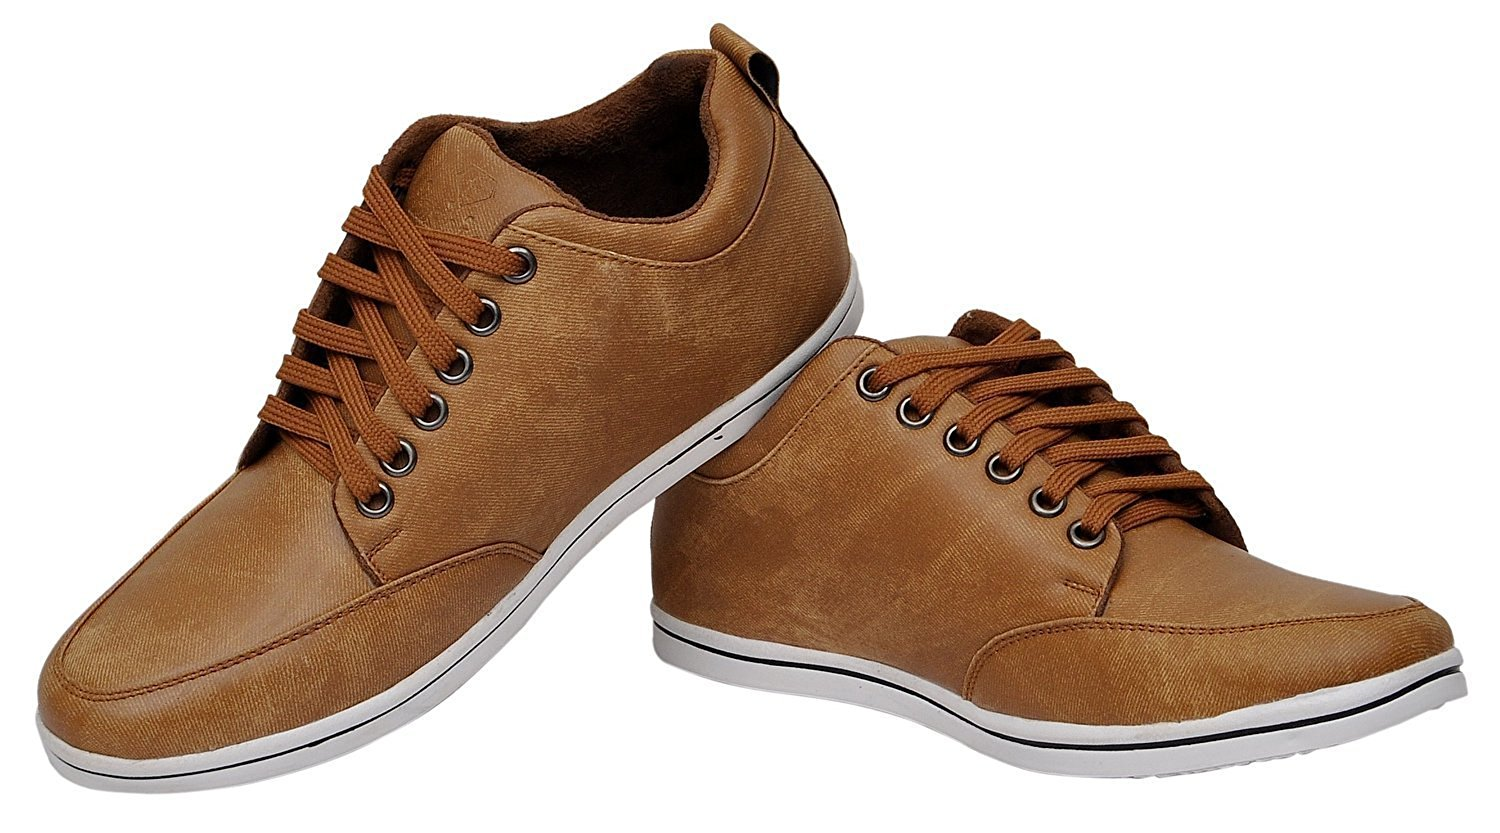 casual shoes for men t-rock menu0027s combo pack sneakers blue u0026 tan casual shoes: buy online at fdtdbhf